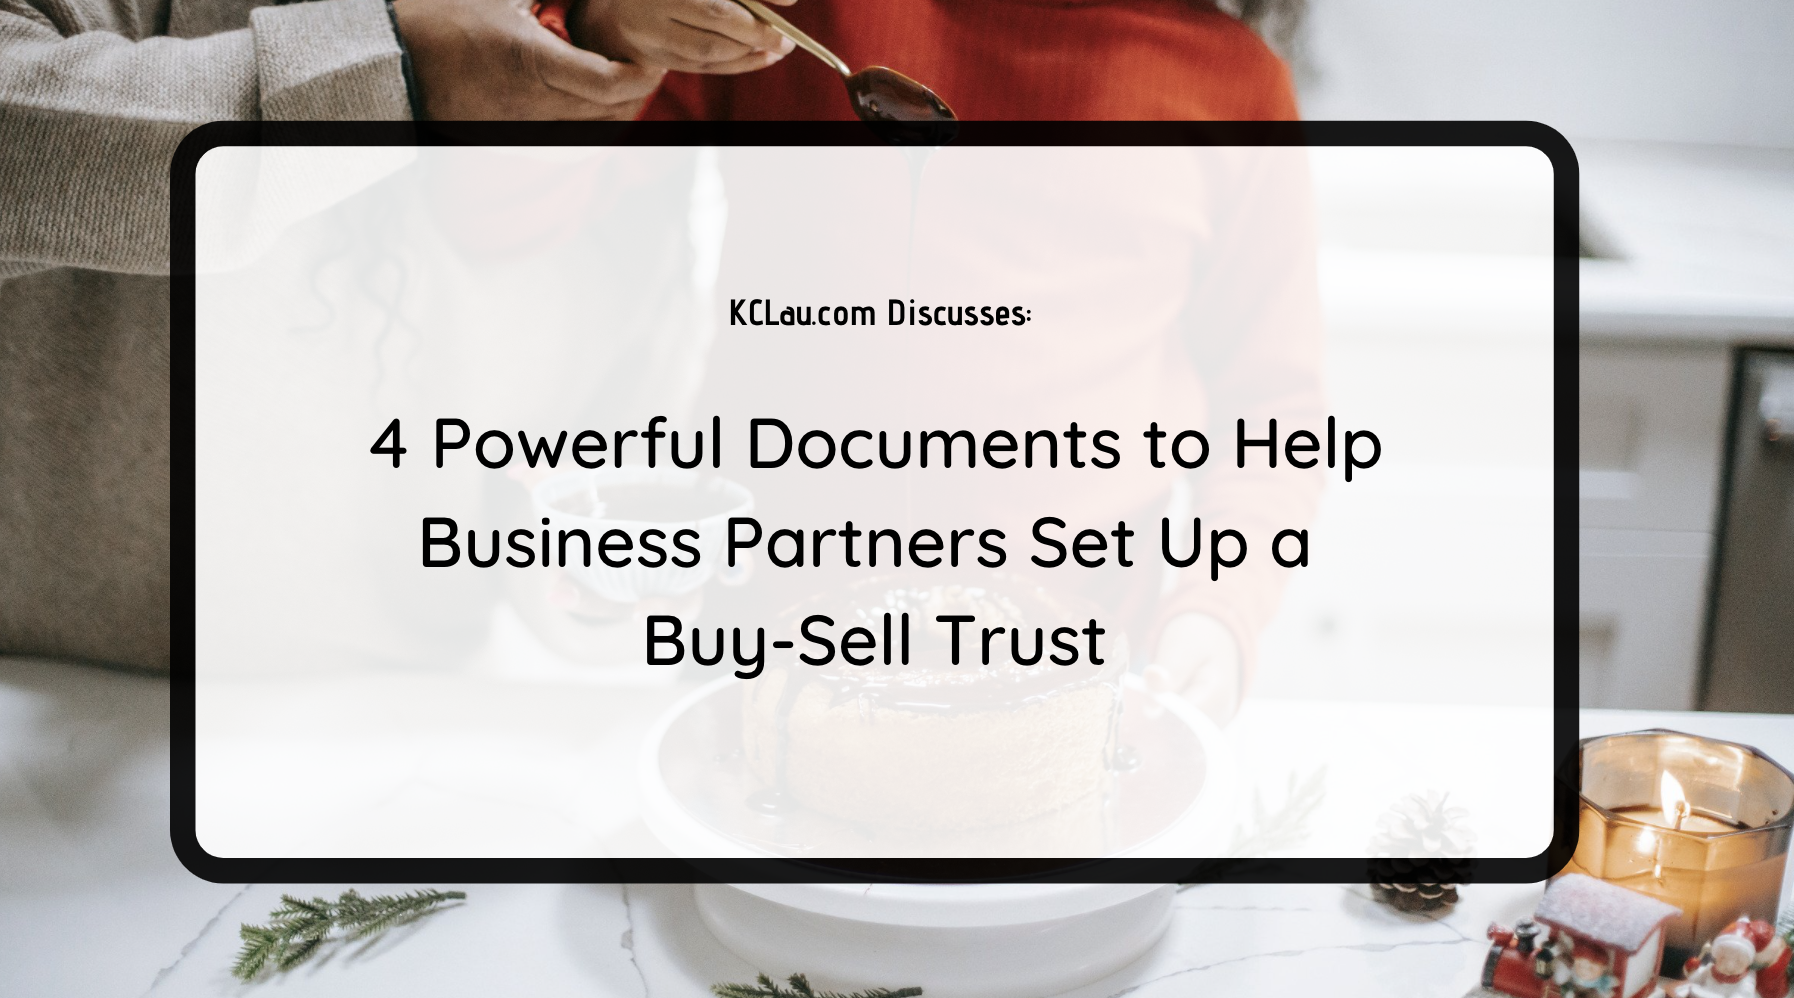 4 Powerful Documents to Help Business Partners Set Up a Buy-Sell Trust